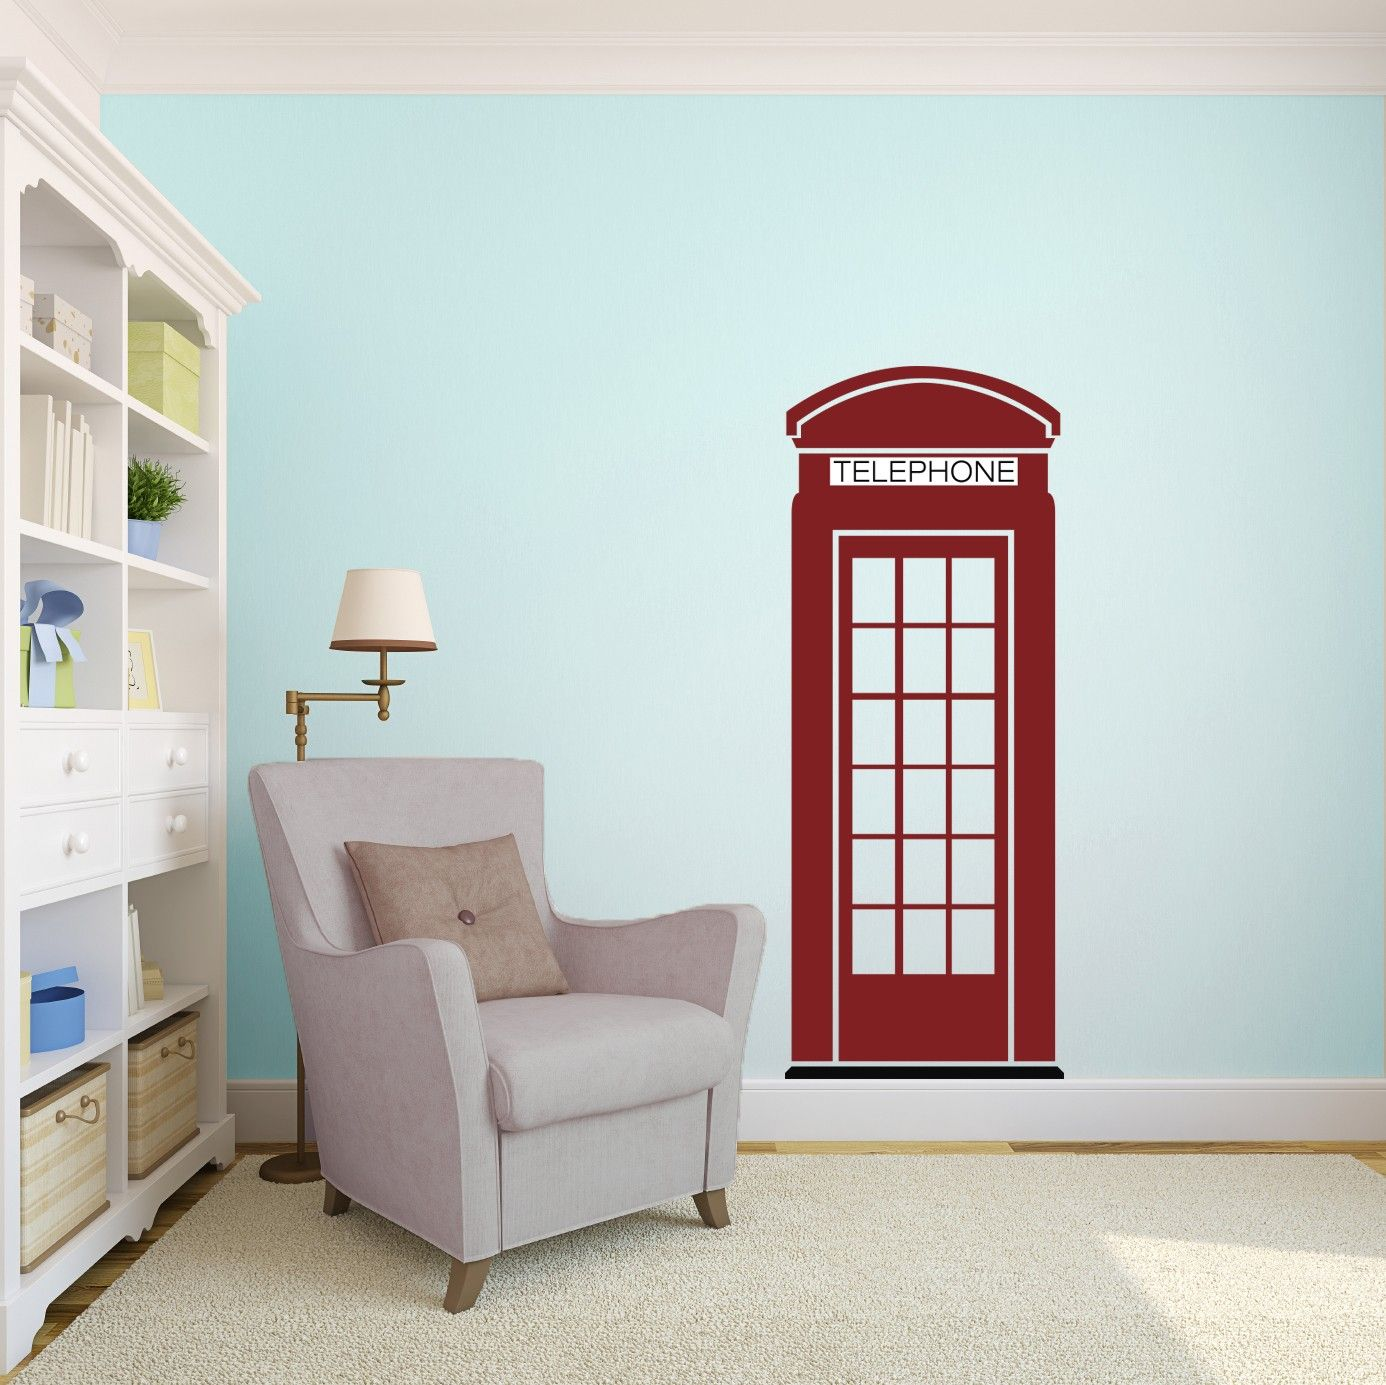 London Phone Booth Wall Art Decal Vinyl Wall Art And Kids Rooms - Custom vinyl decals uk